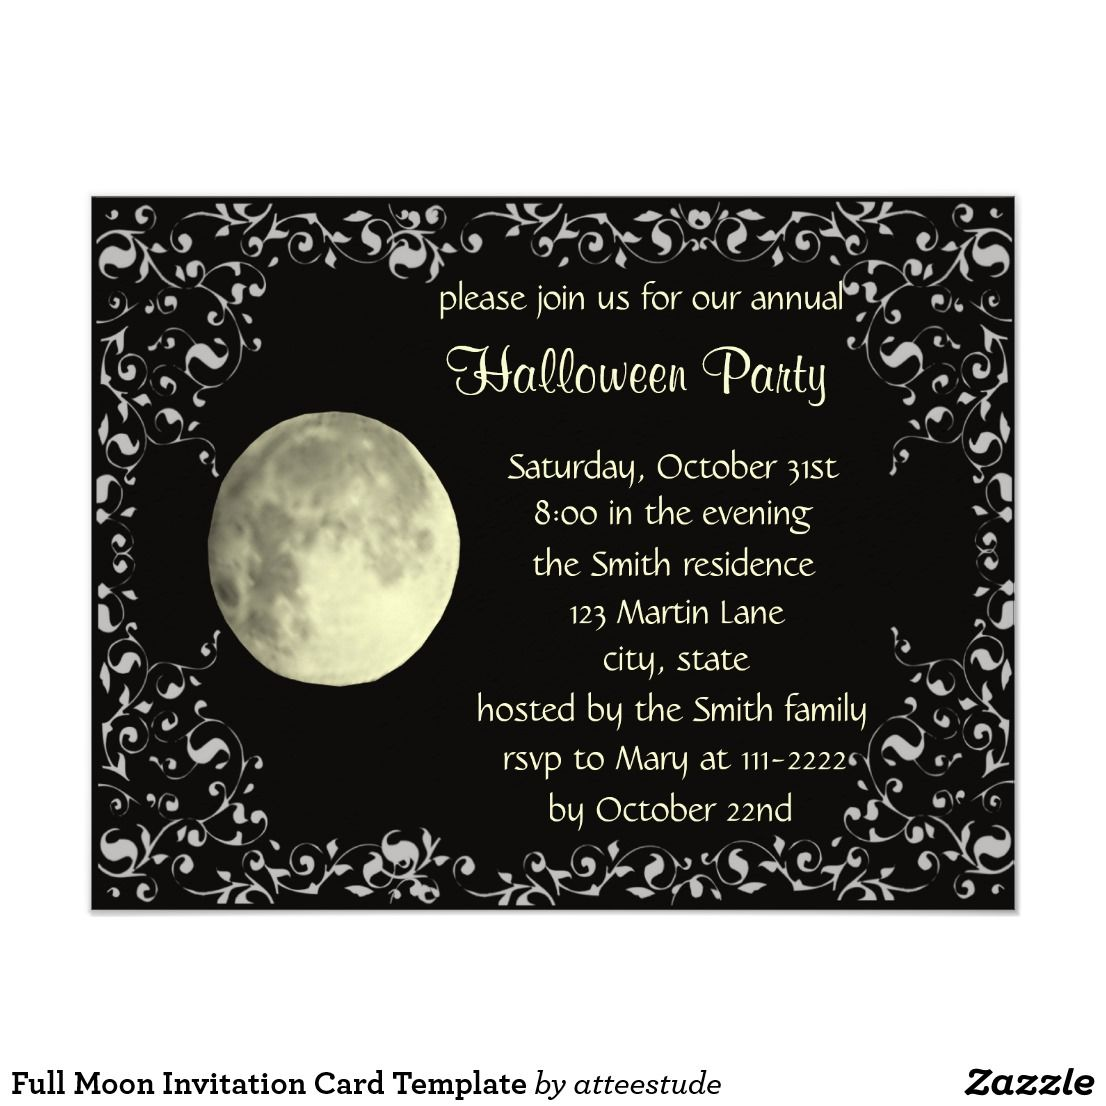 Full Moon Invitation Card Template Zazzle Com Invitation Cards